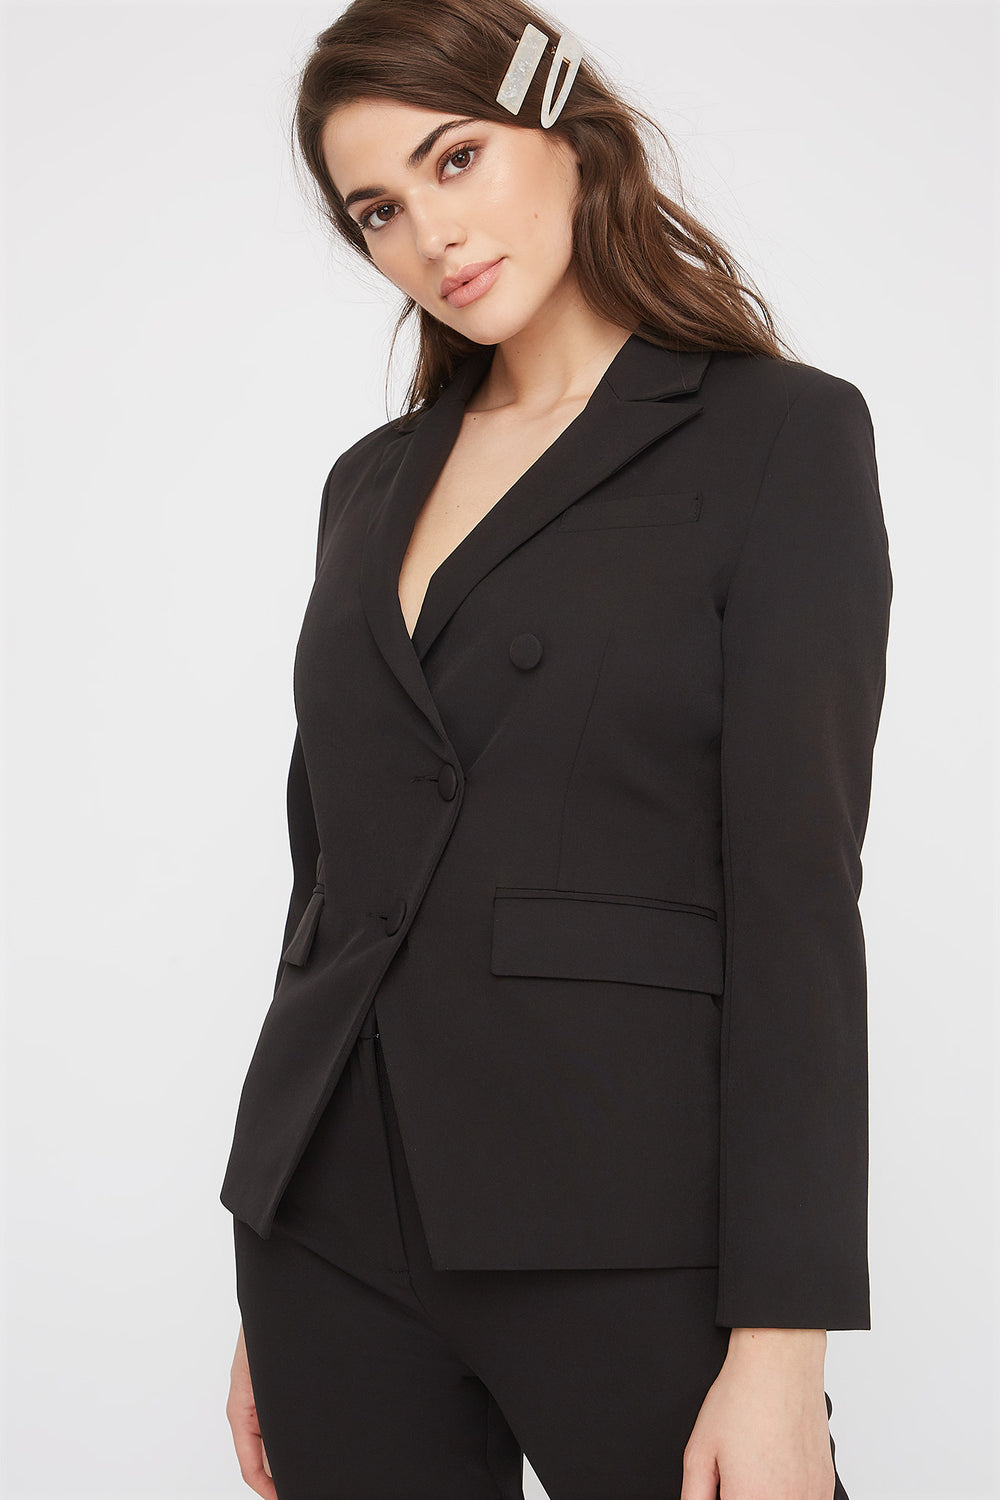 3-Button Single Breasted Blazer Black